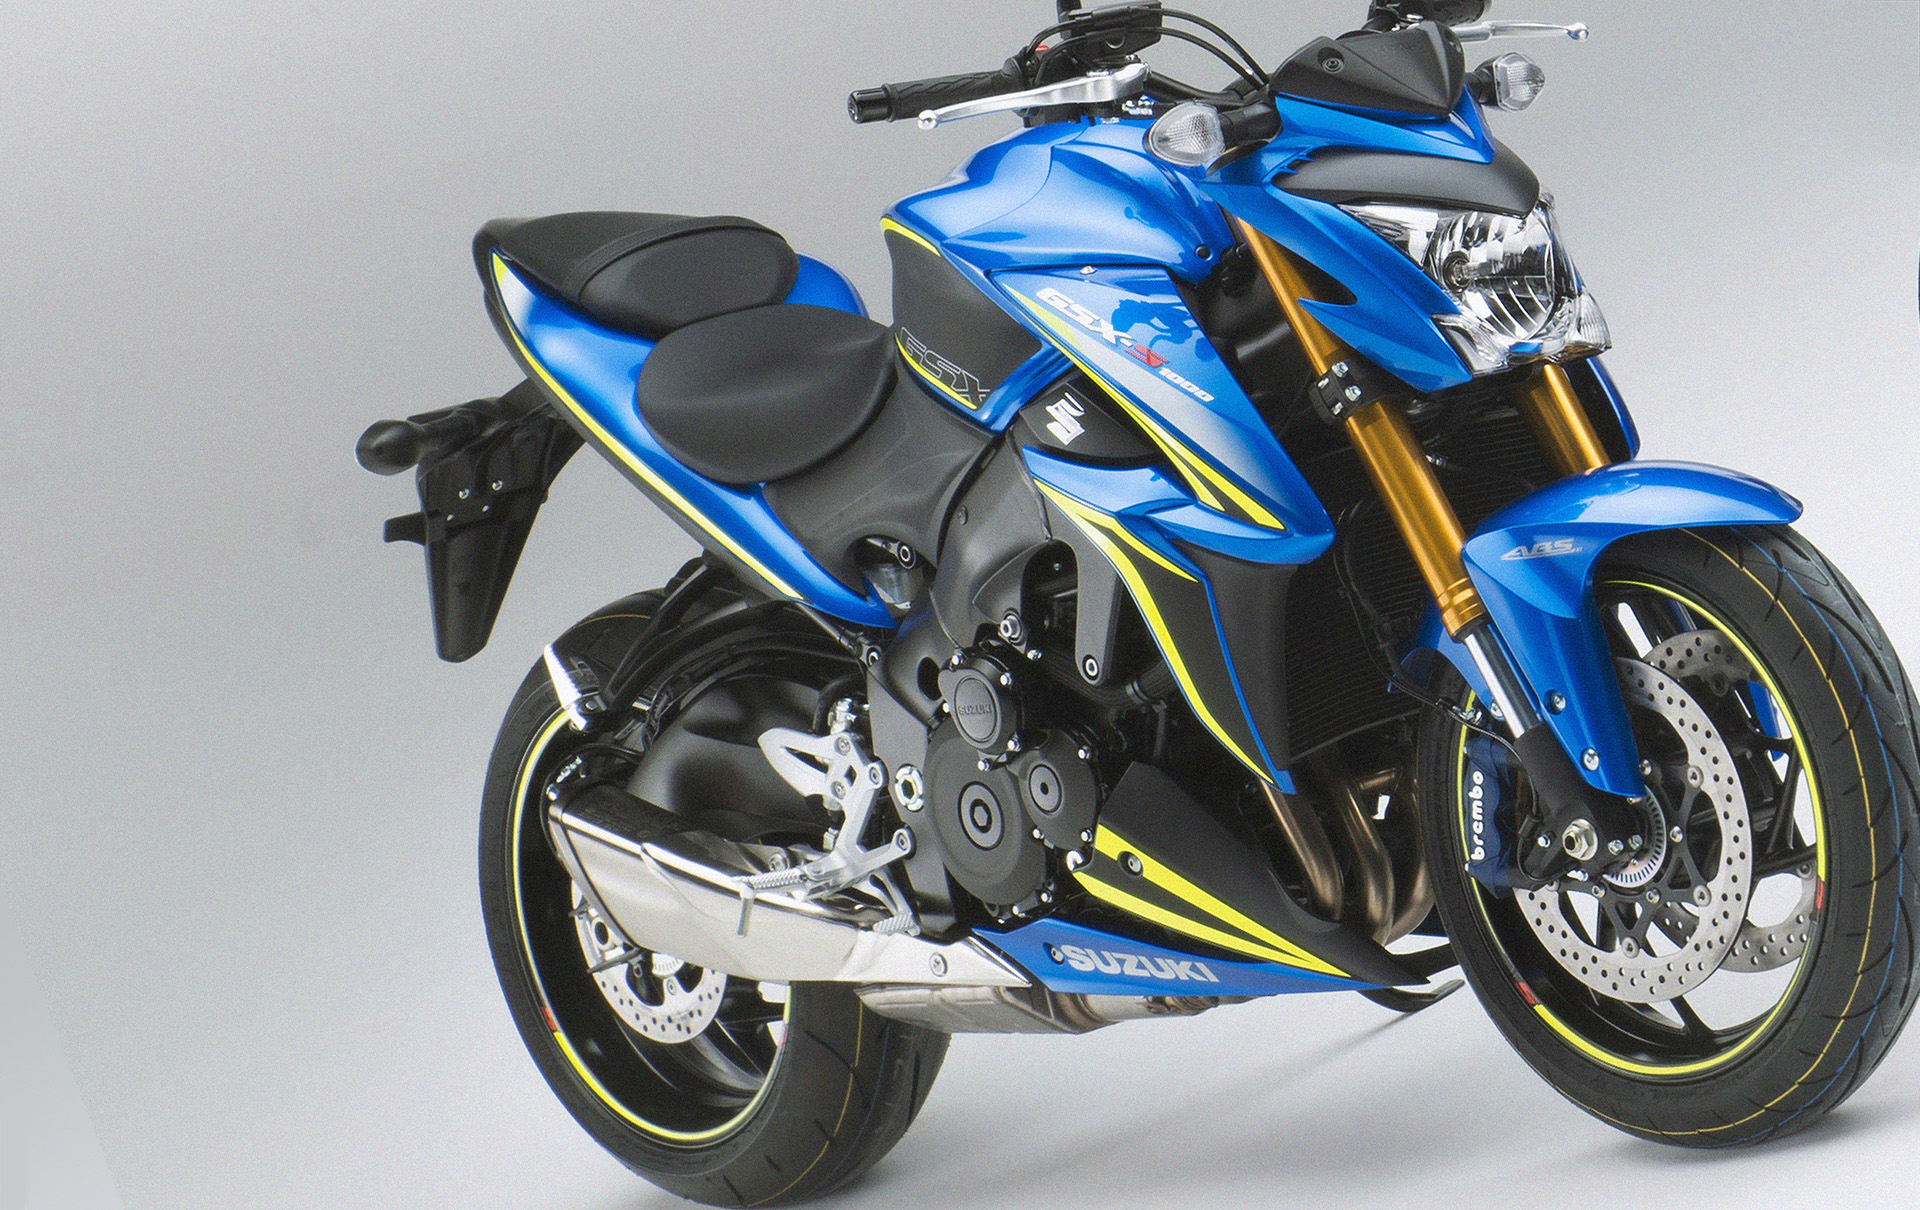 suzuki announces gsx s1000 carbon and gsx s1000f tour special edition models cars motorbikes. Black Bedroom Furniture Sets. Home Design Ideas